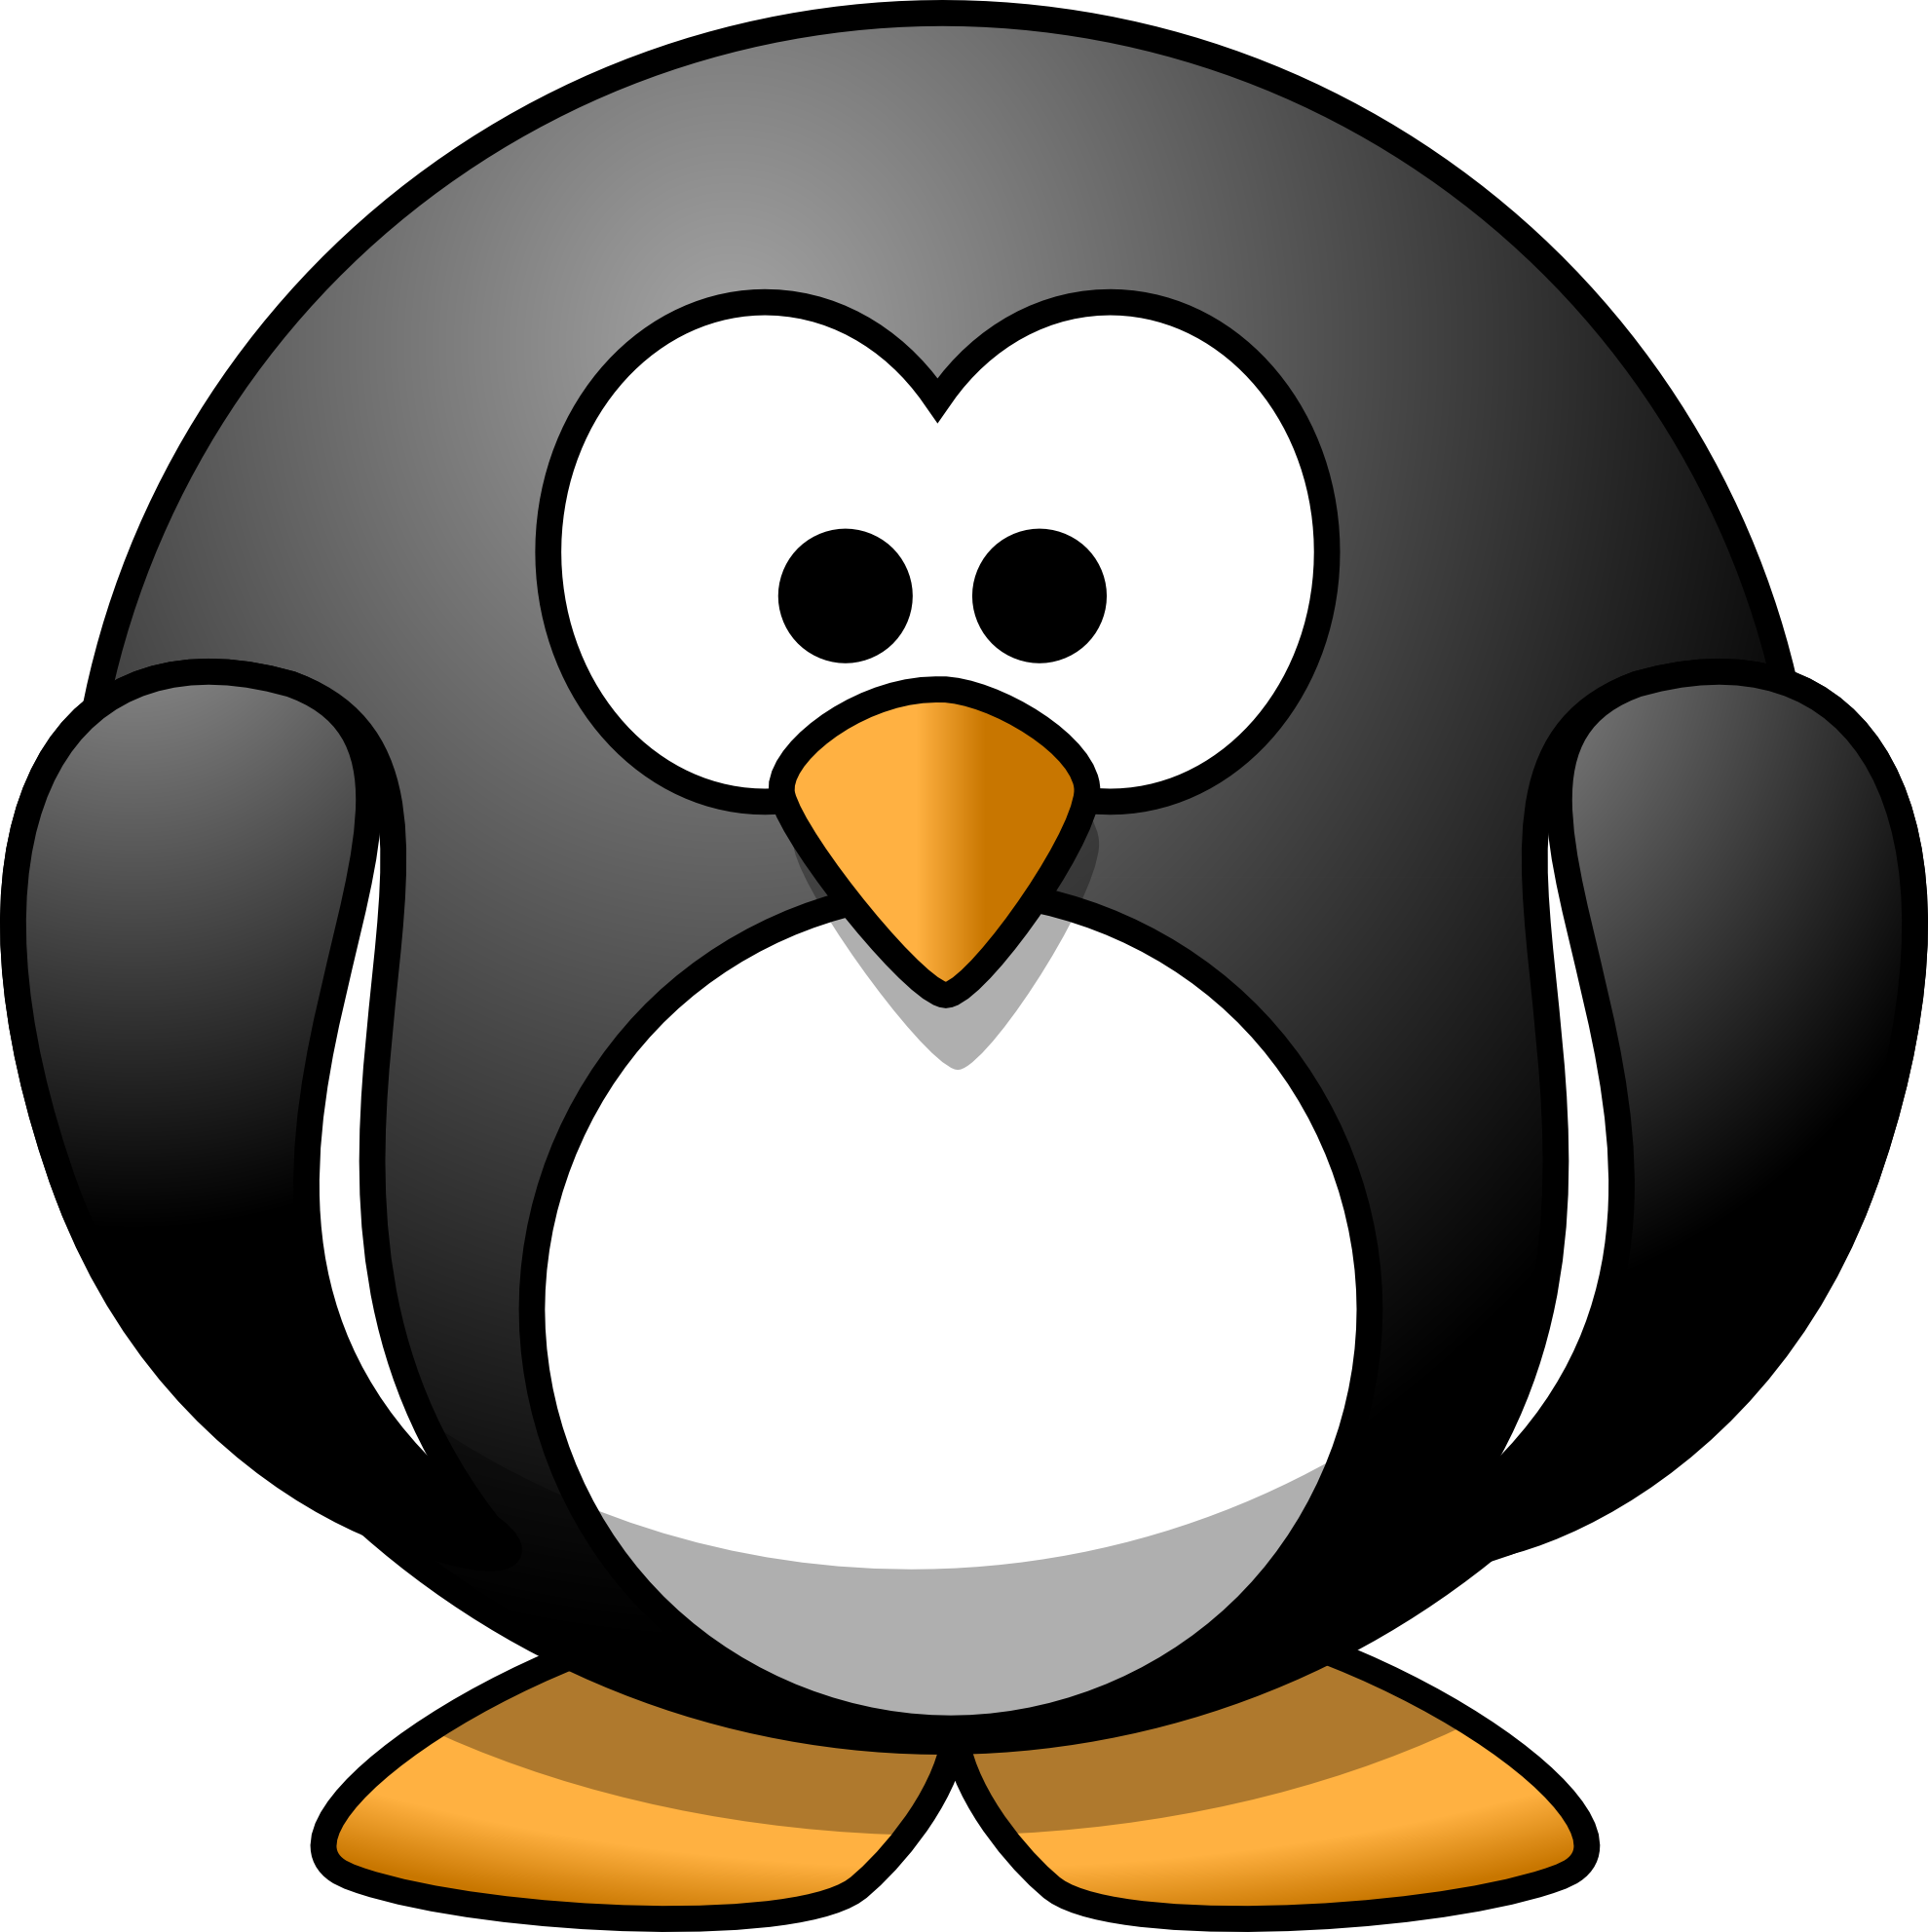 Cute penguins cute mighty pictures - Round Penguin Mascot